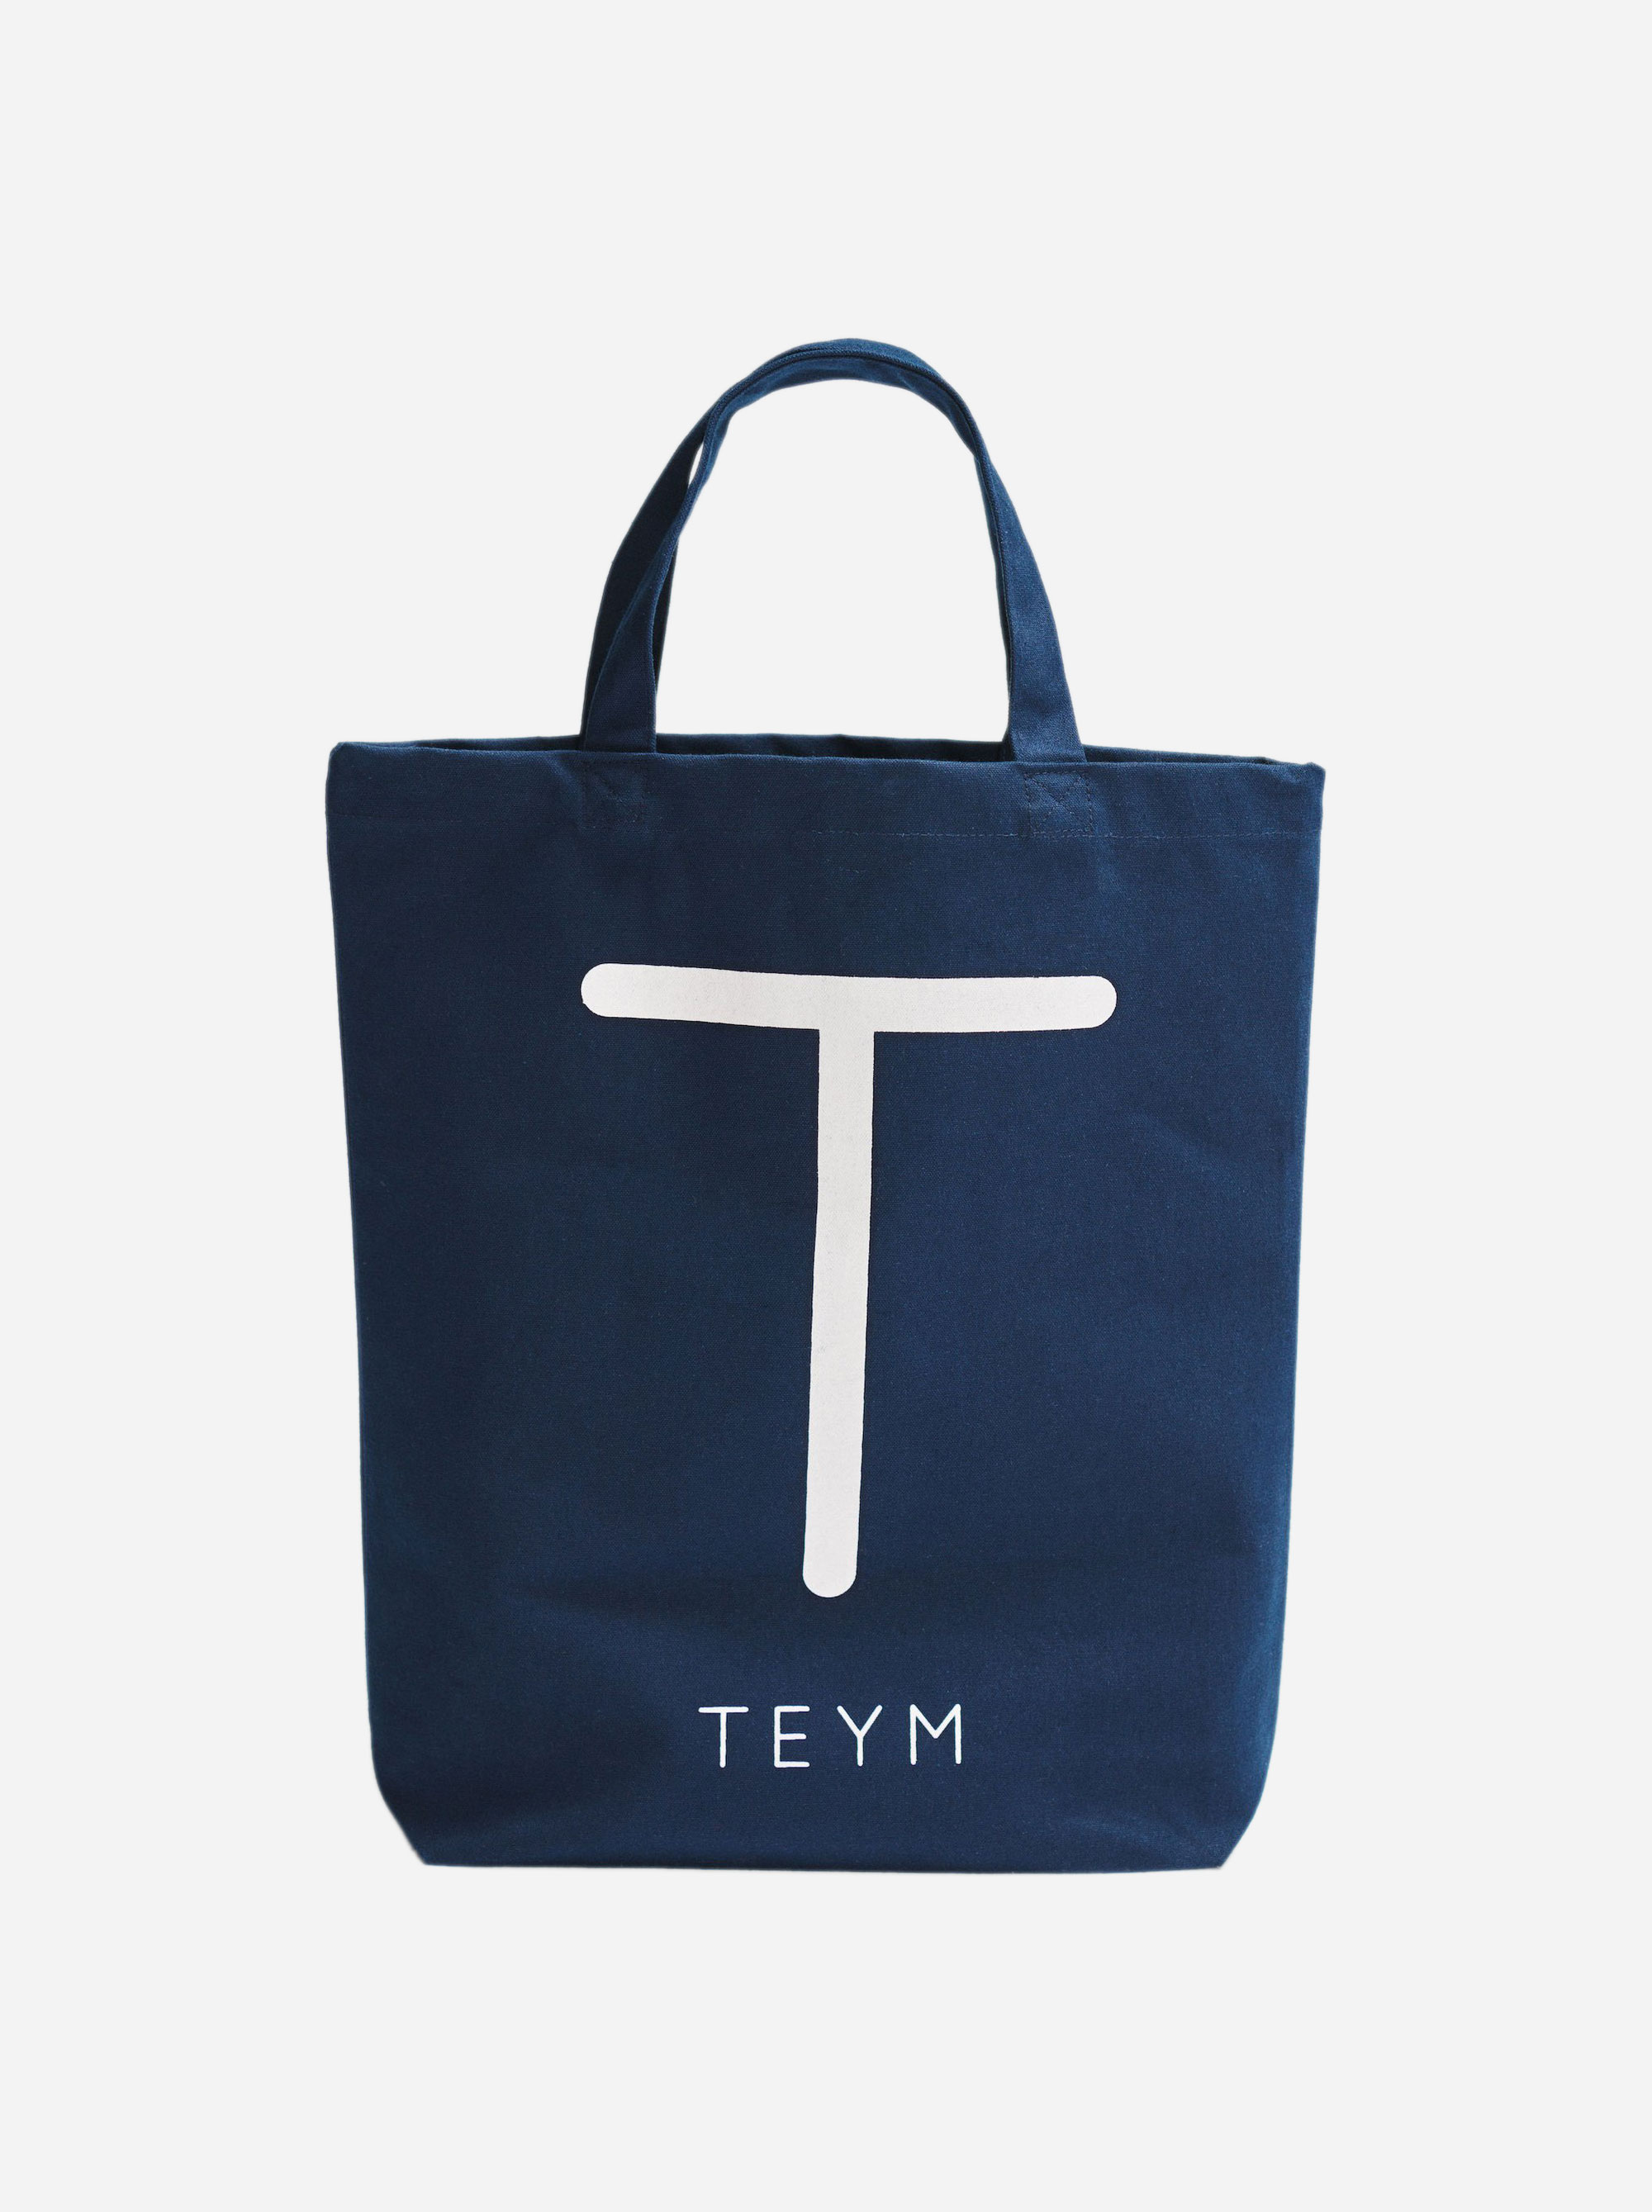 Teym - The Canvas Tote - 1